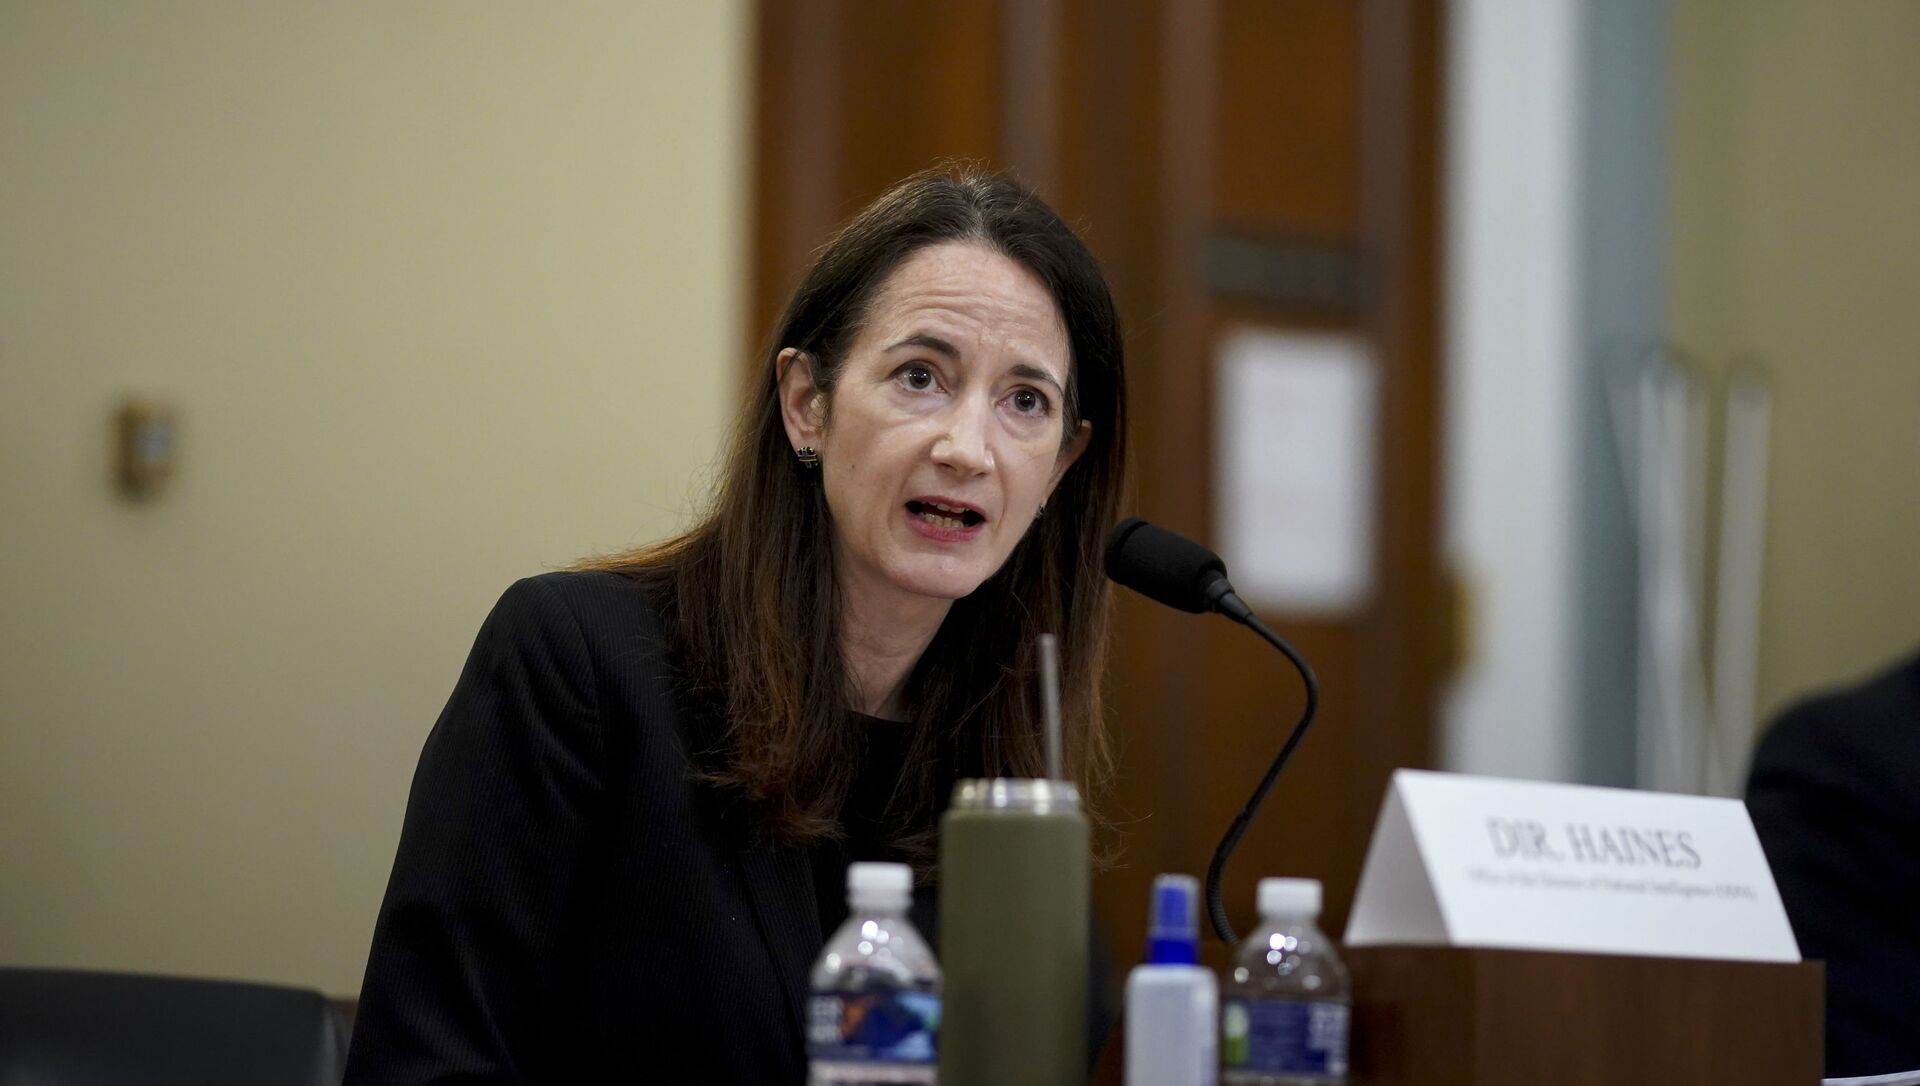 Director Avril Haines of the Office of the Director of National Intelligence (ODNI) testifies during a House Intelligence Committee hearing on Capitol Hill in Washington, Thursday, April 15, 2021 - Sputnik International, 1920, 16.04.2021